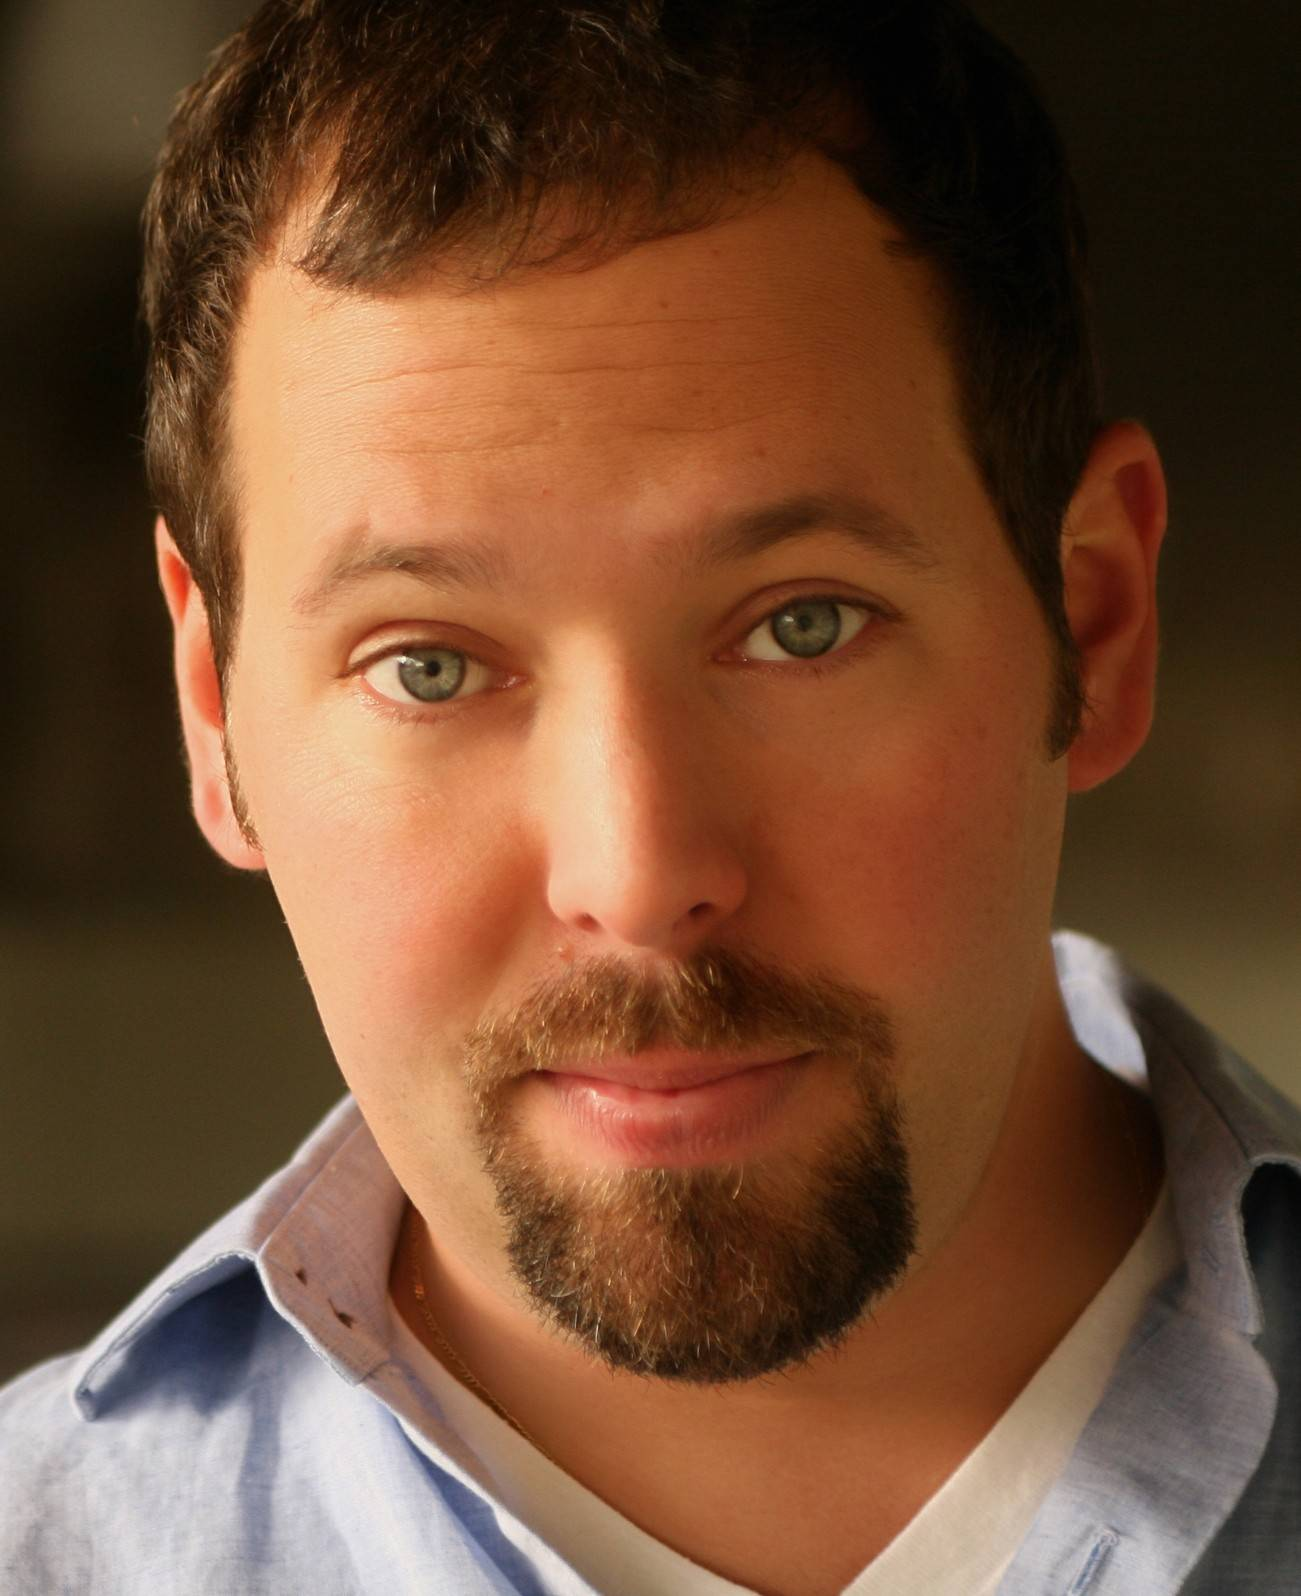 Comedian Bert Kreischer performs at the Improv Comedy Showcase in Schaumburg on Friday and Saturday, March 14-15.